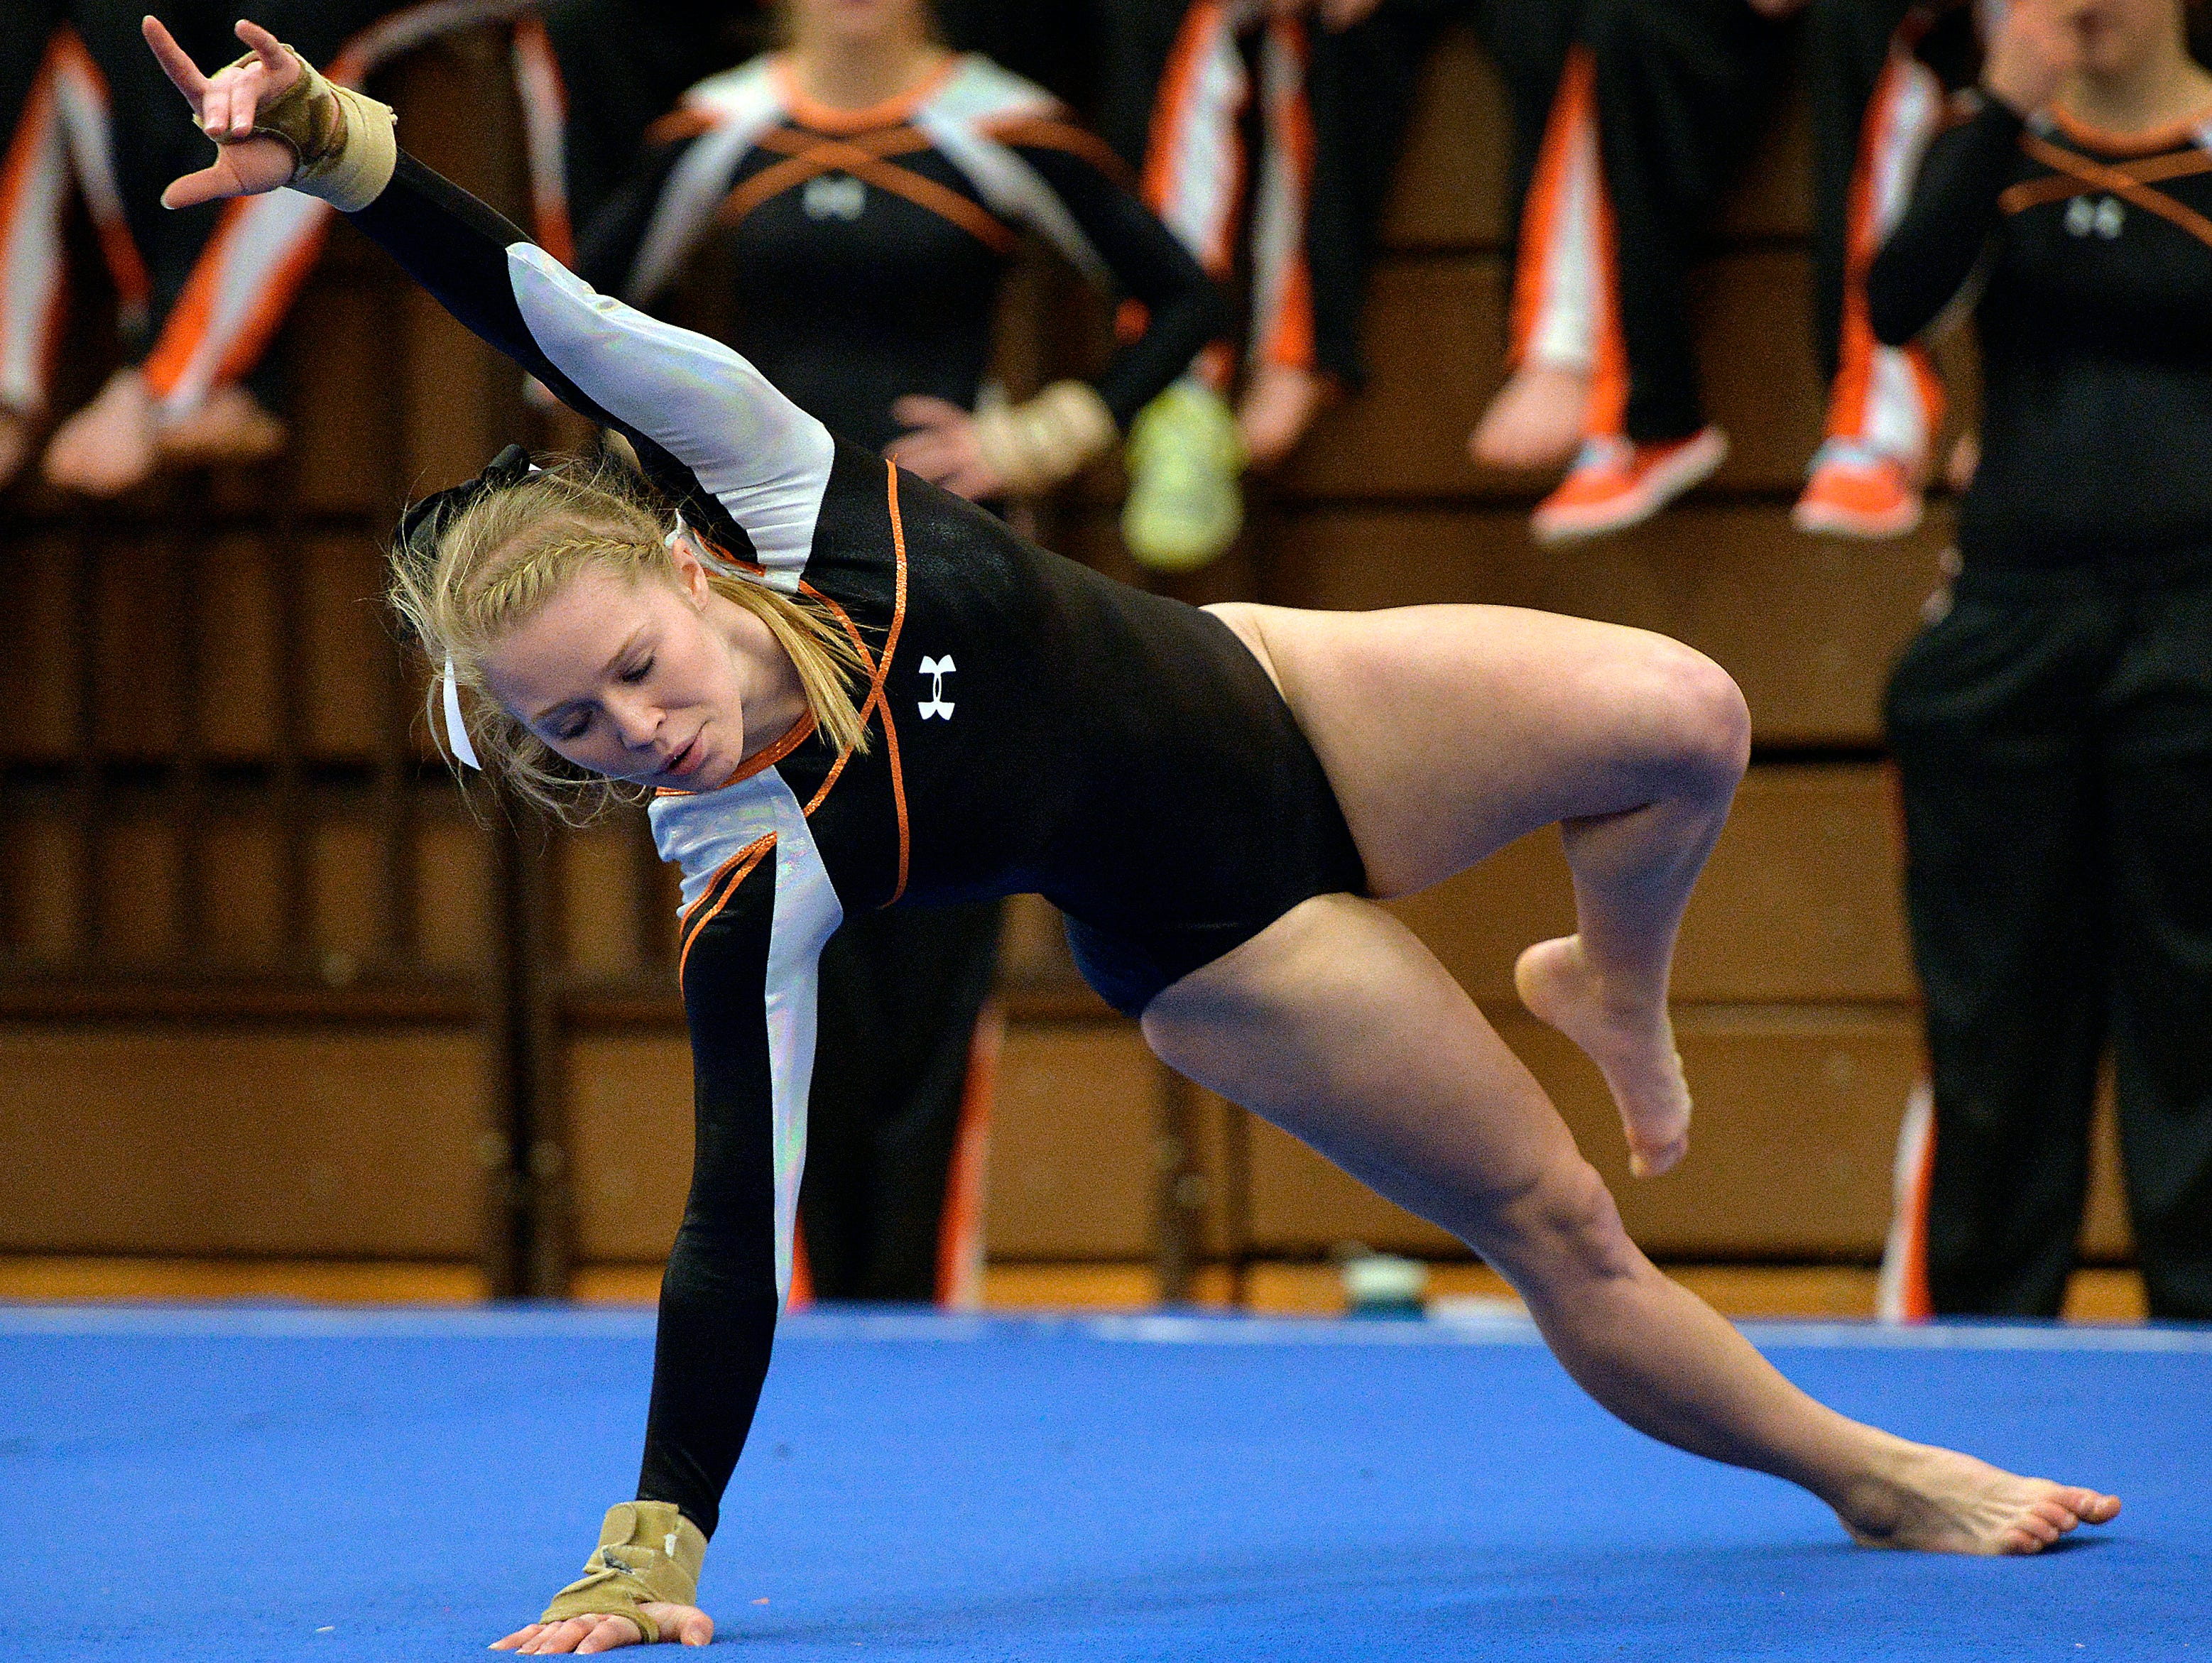 St. Cloud Tech senior gymnast Kalley Thompson performs during her floor exercise routine Saturday, Dec. 5 in the St. Cloud Apollo Gymnastics Invite.